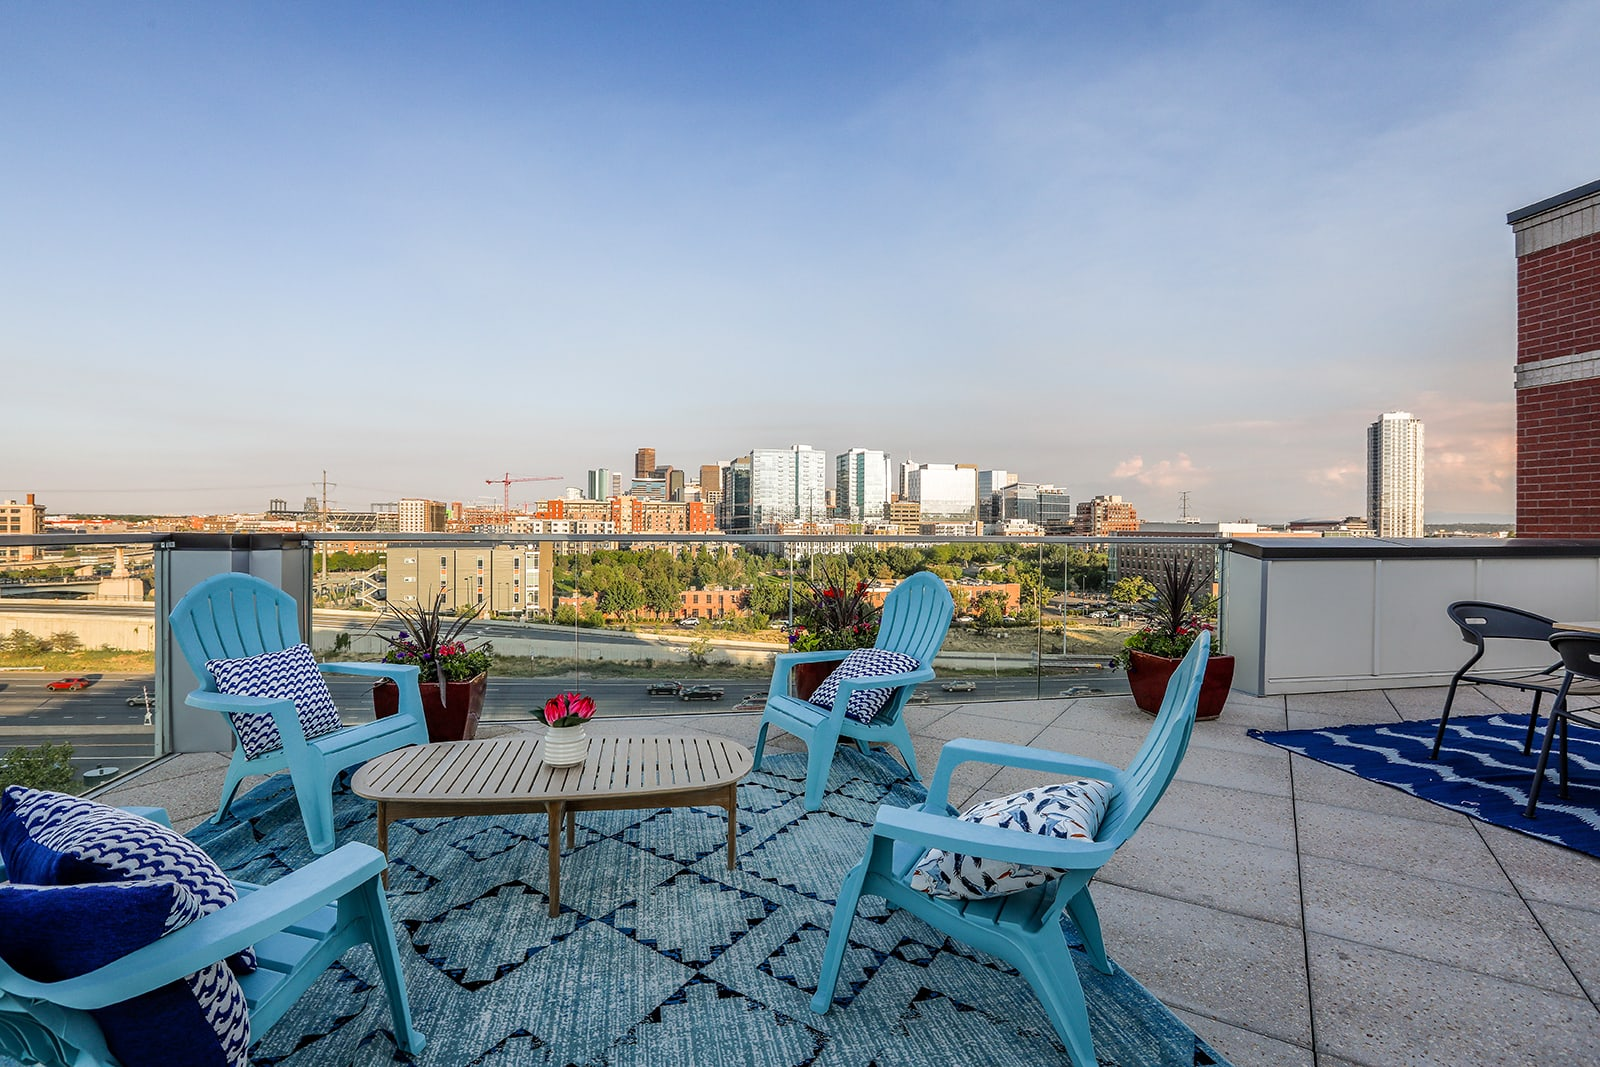 The Rooftop Deck With Views Of The Denver Skyline at Centric LoHi by Windsor, 2525 18th St, Denver